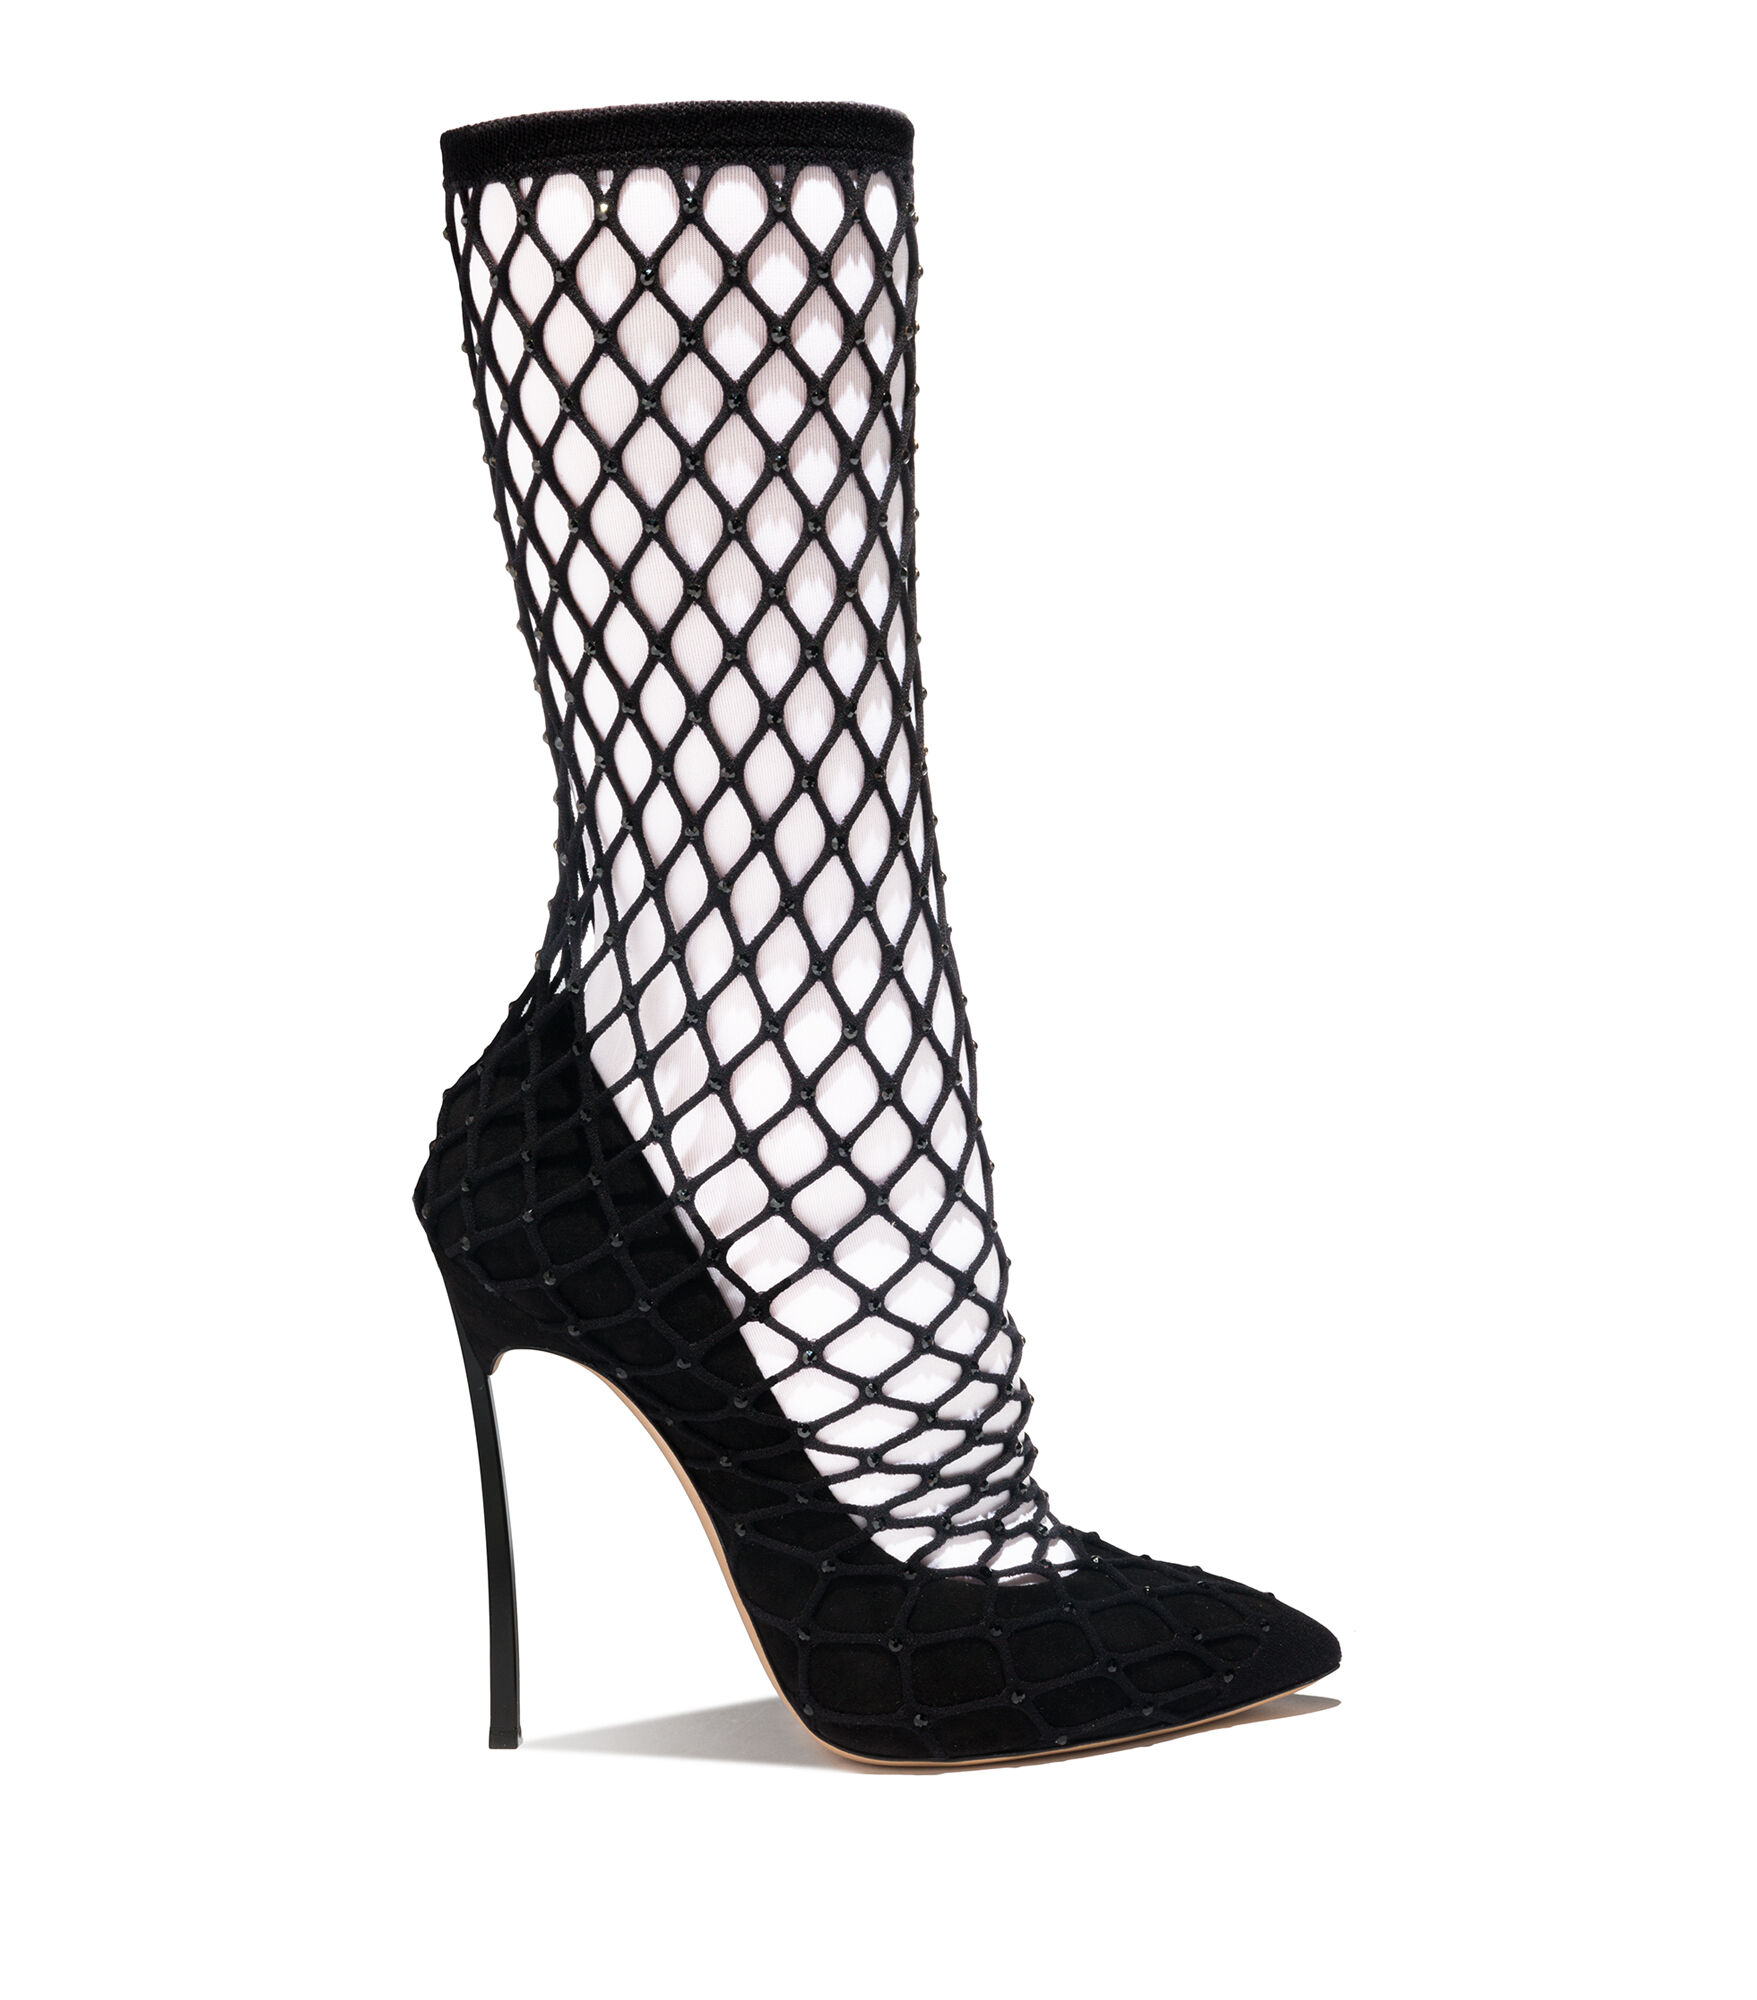 Casadei Ankle Boots - Blade Spider Girl Black Suede and rhinestone fishnet sock